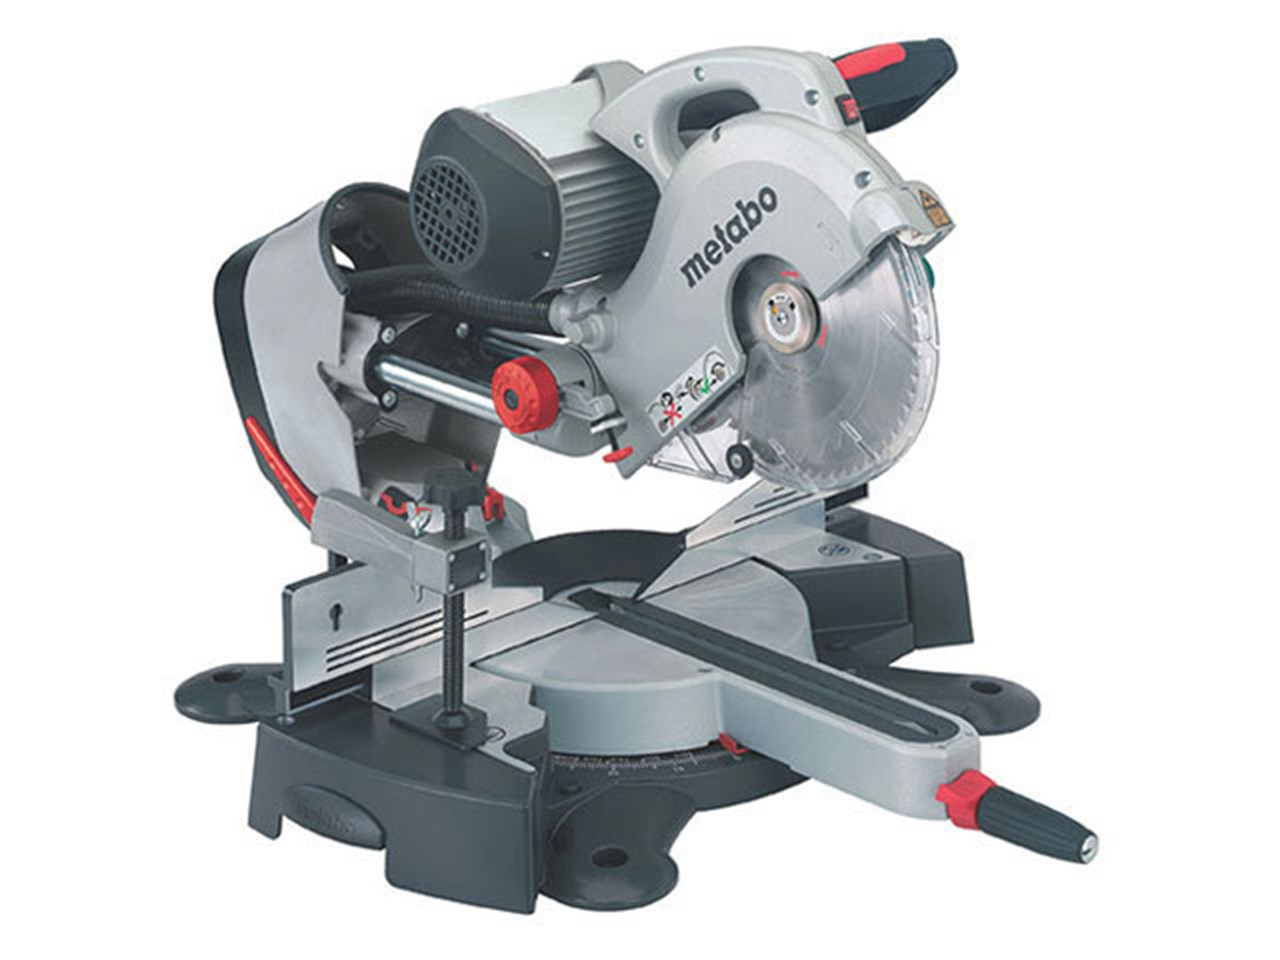 Metabo Kgs254 Iplus 240v Induction Motor Mitre Saw